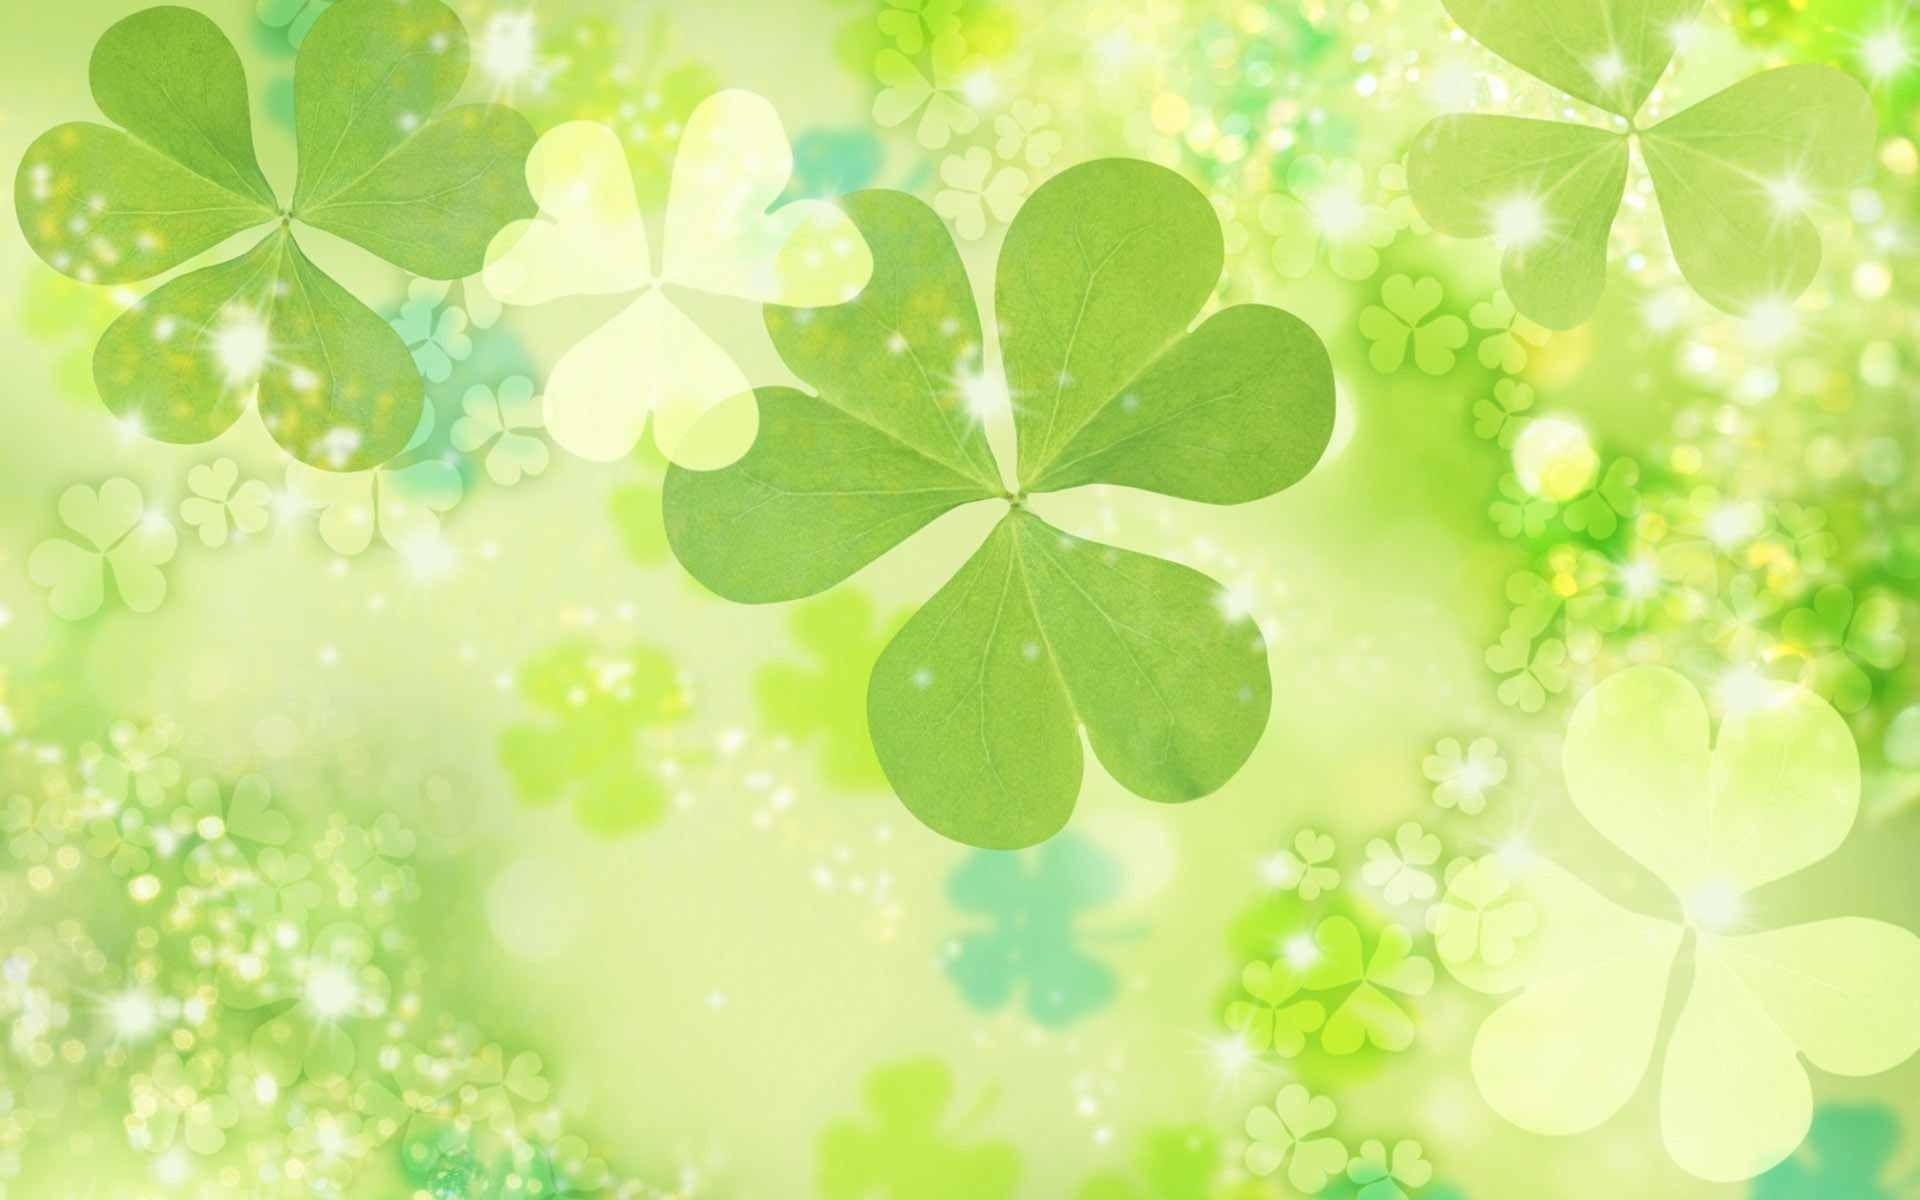 st. patrick's day computer wallpapers, desktop backgrounds